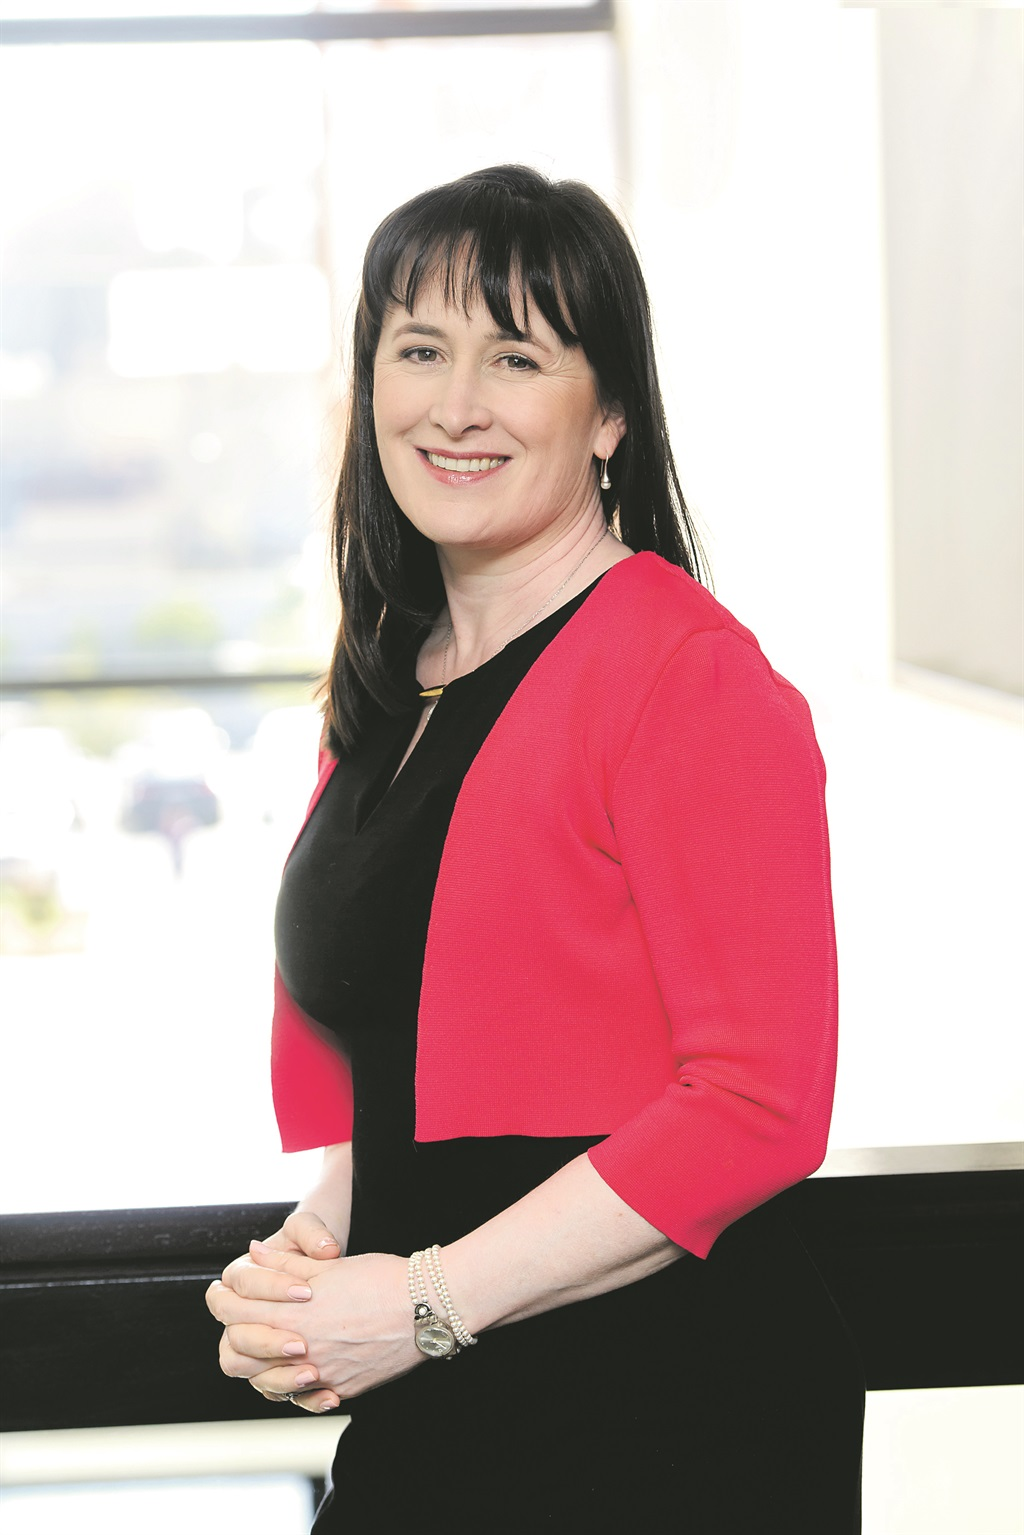 Nicola Kleyn, dean of the Gordon Institute of Business Science. Picture: supplied